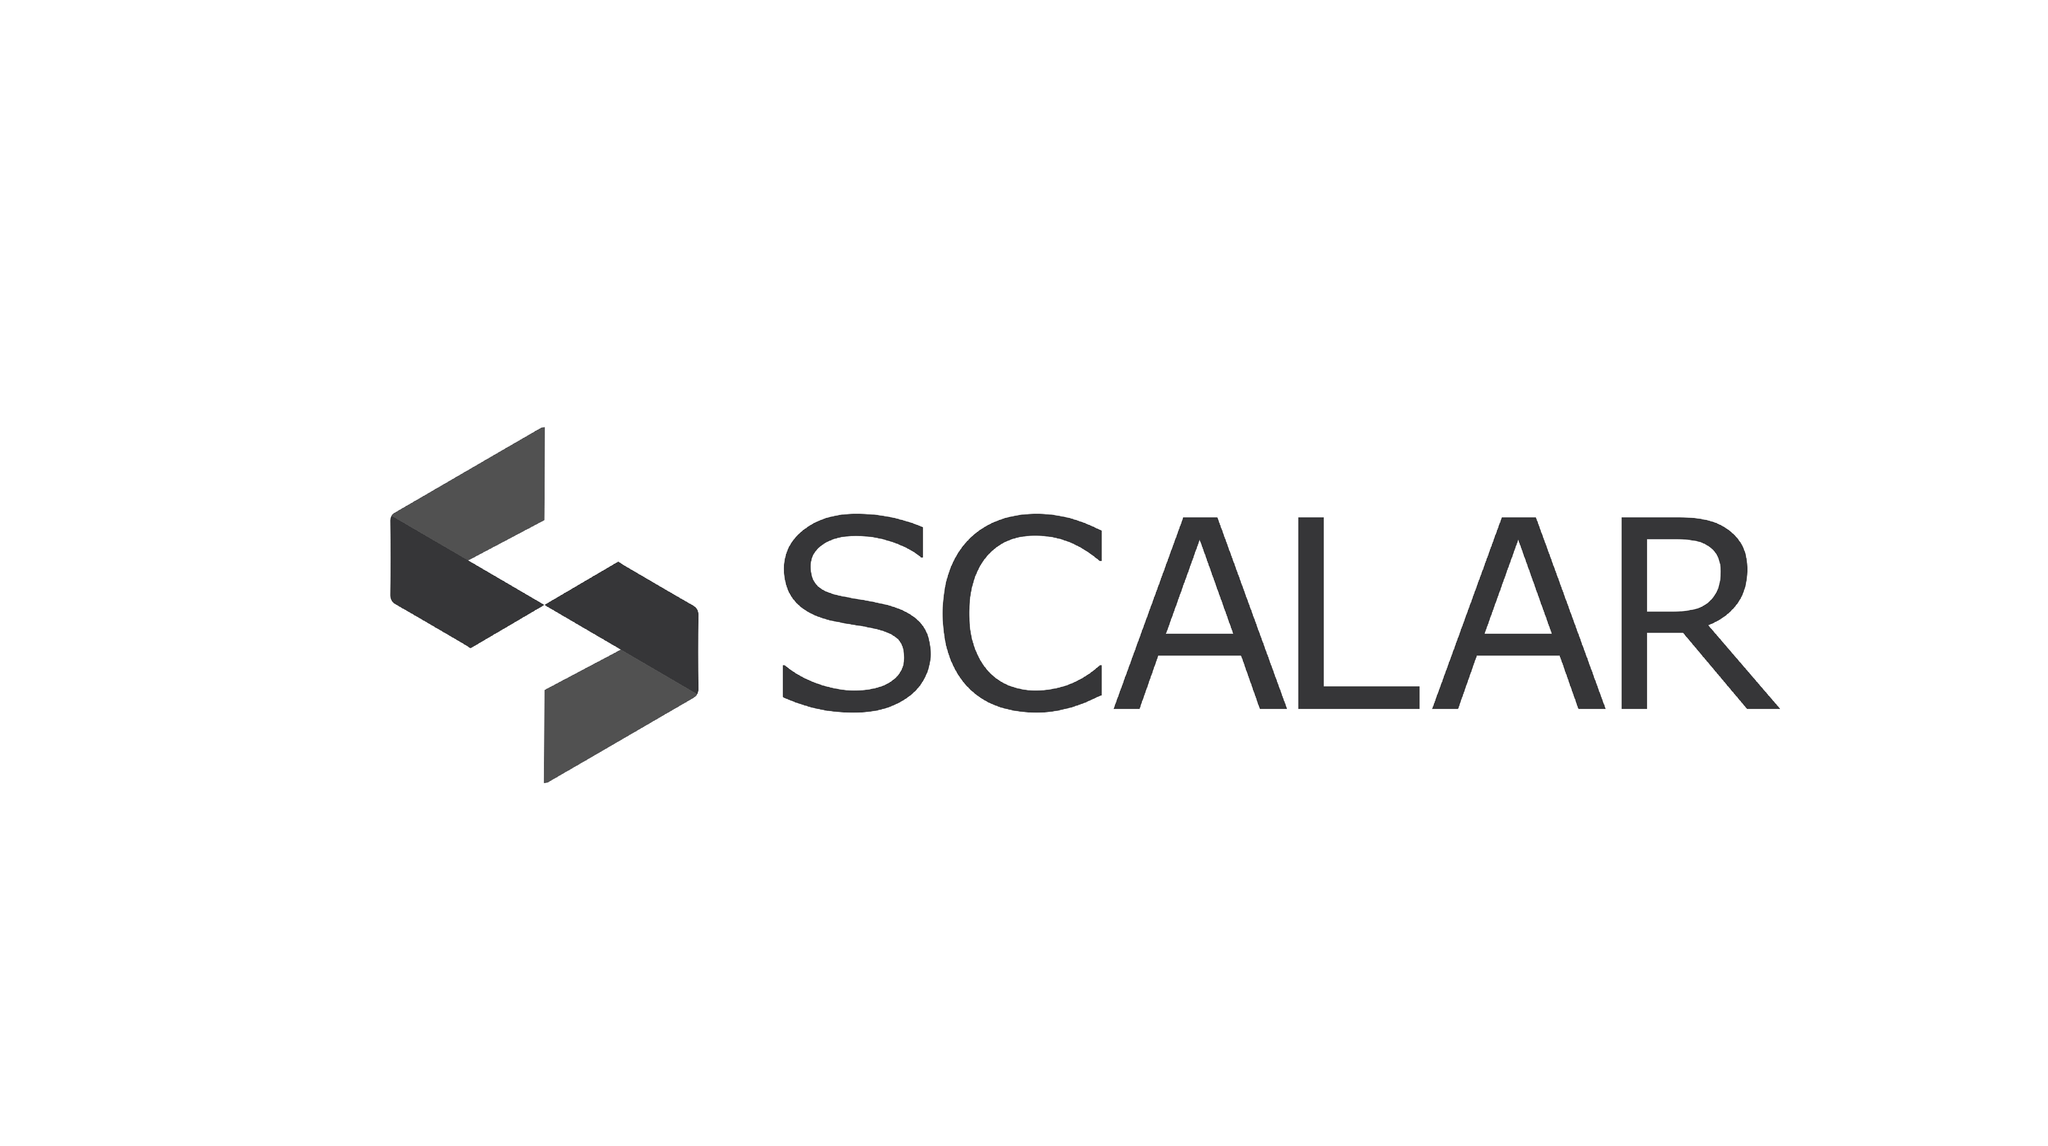 Scalardata Co. Ltd.